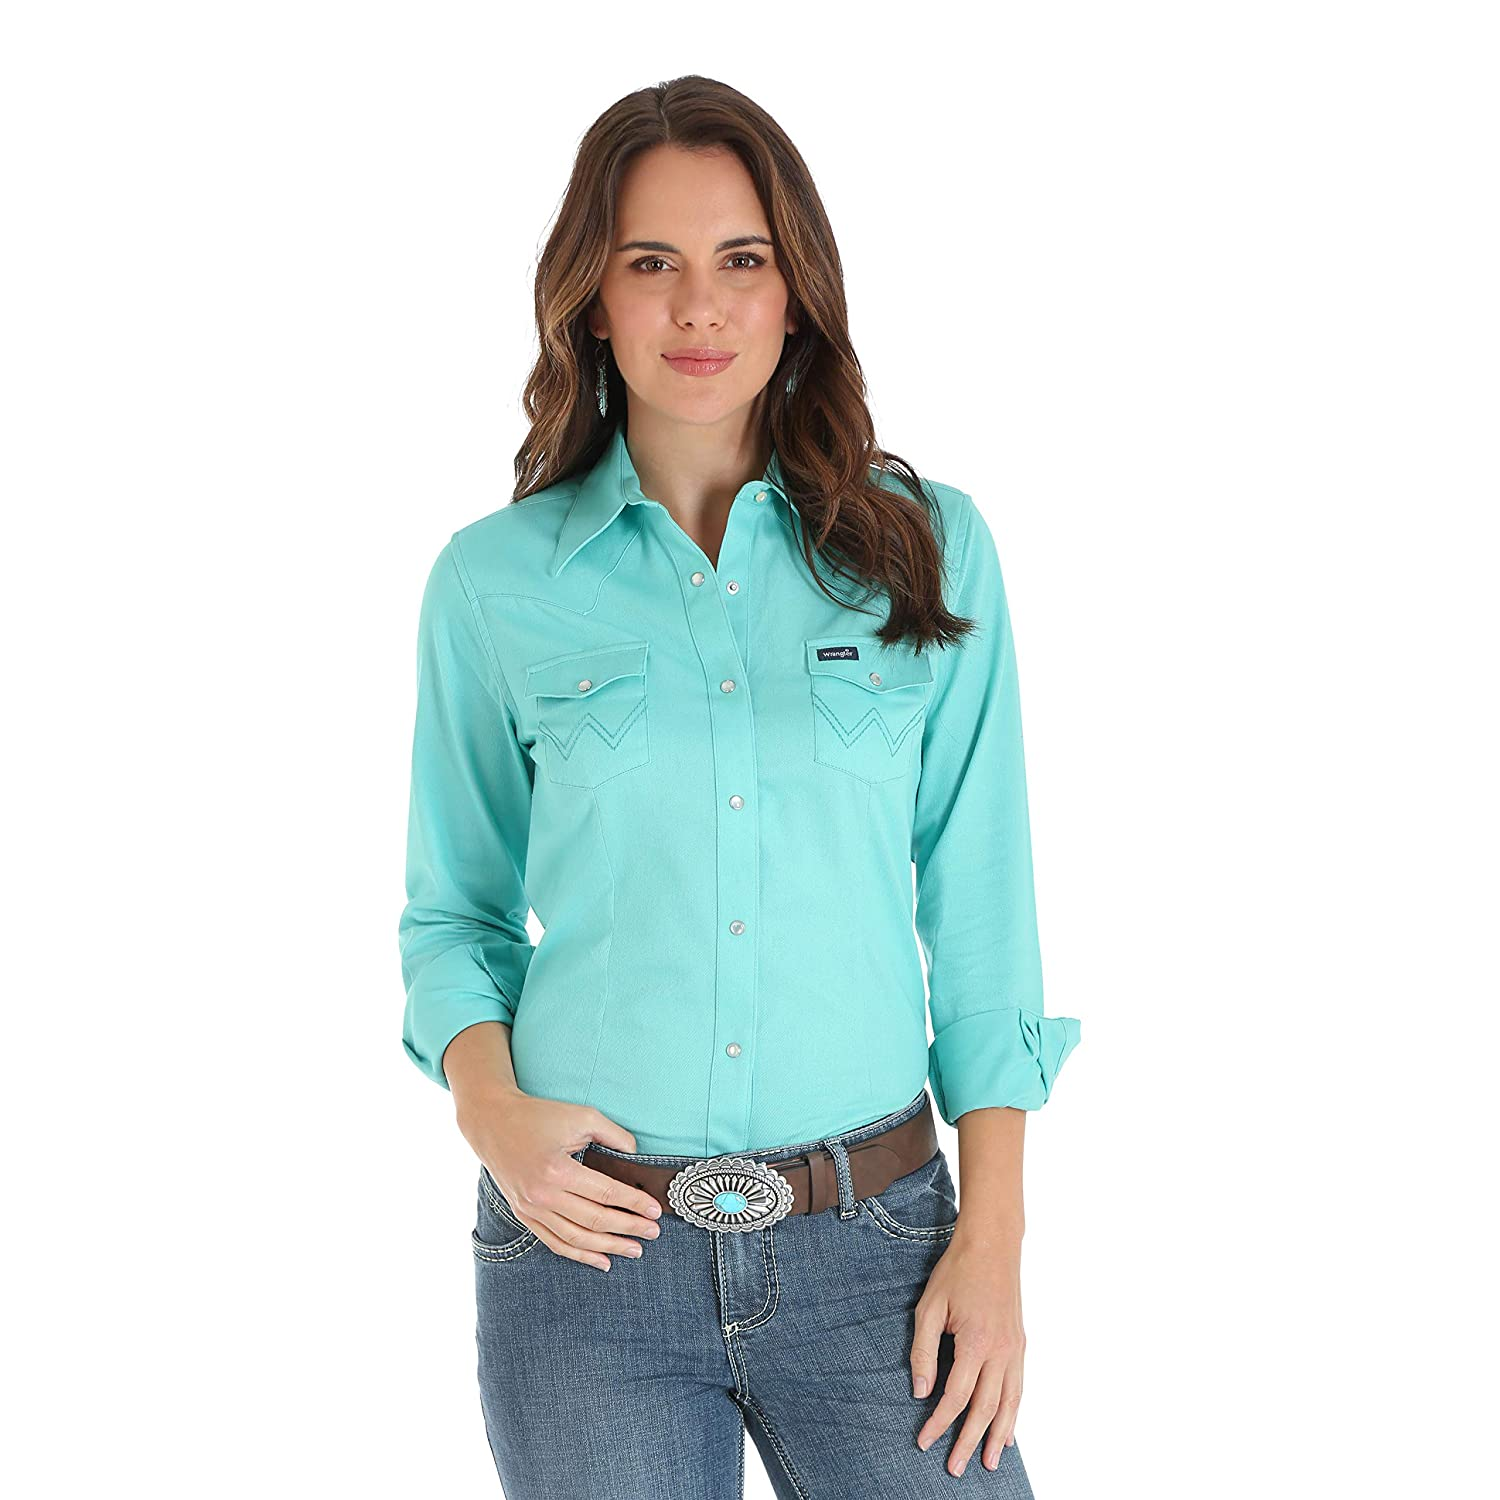 Turquoise Wrangler Womens Long Sleeve Western Snap Work Shirt Blouse